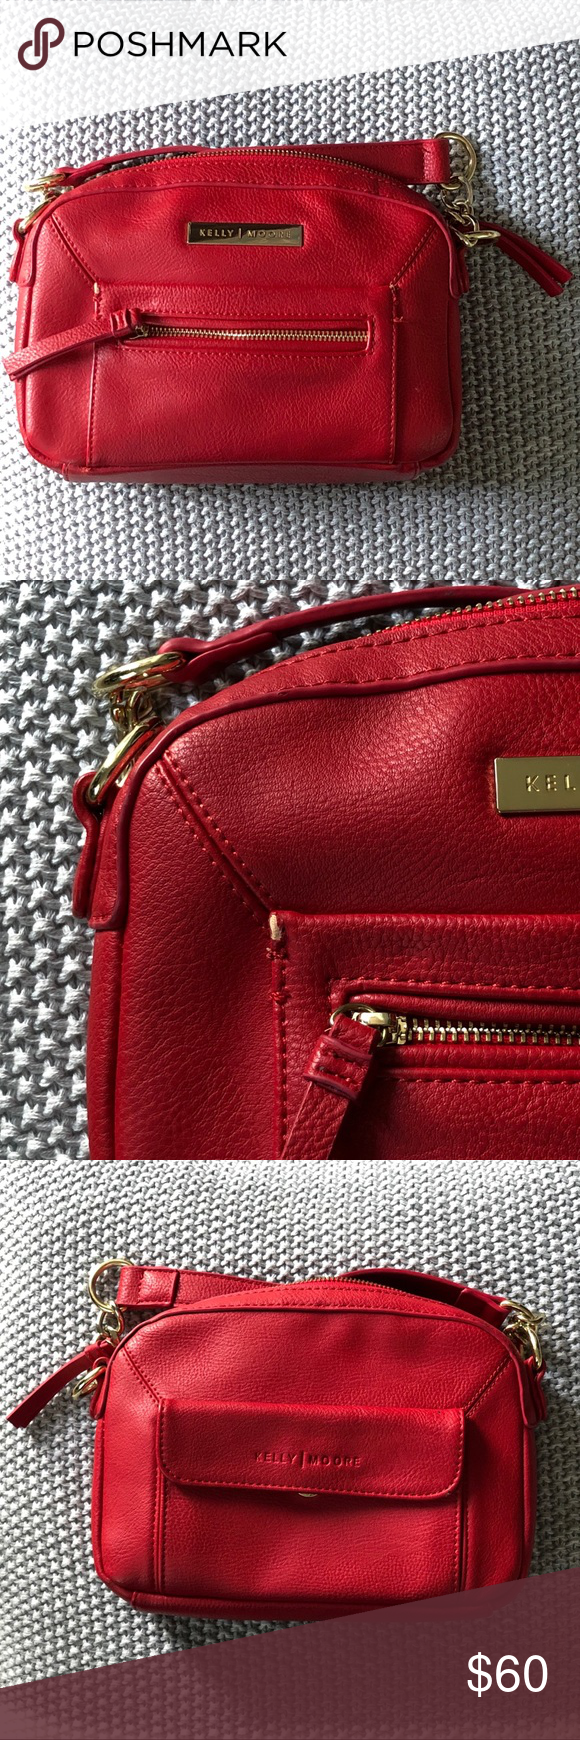 Kelly Moore Vegan Camera Purse This red purse from Kelly Moore is used but still in decent shape. There is somewhere on the corner of a pocket but in otherwise good shape. Comes with adjustable strap. Kelly Moore Bags Crossbody Bags #camerapurse